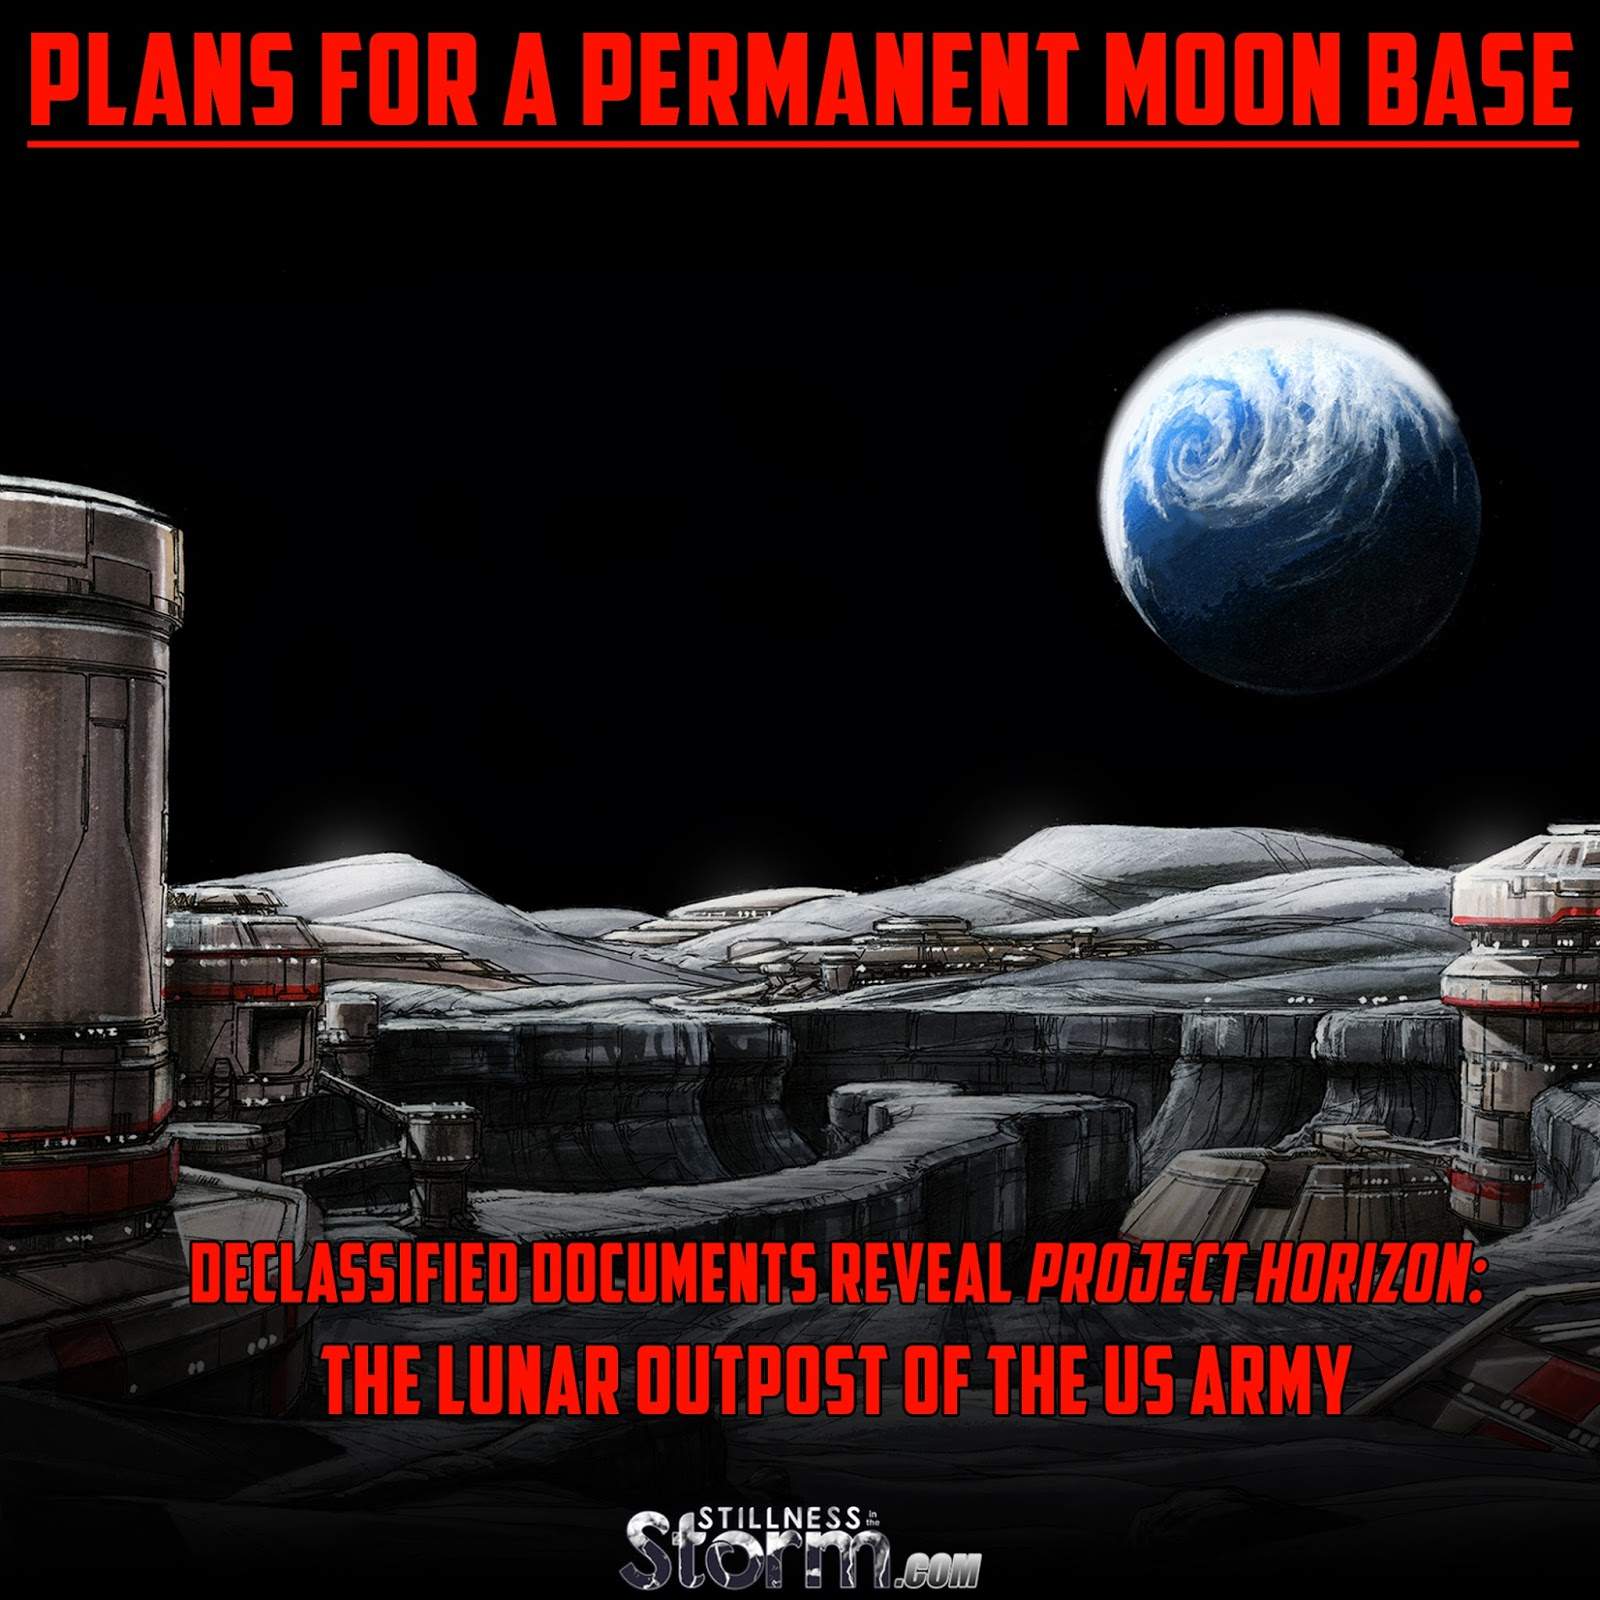 Plans for a Permanent Moon Base Declassified Documents